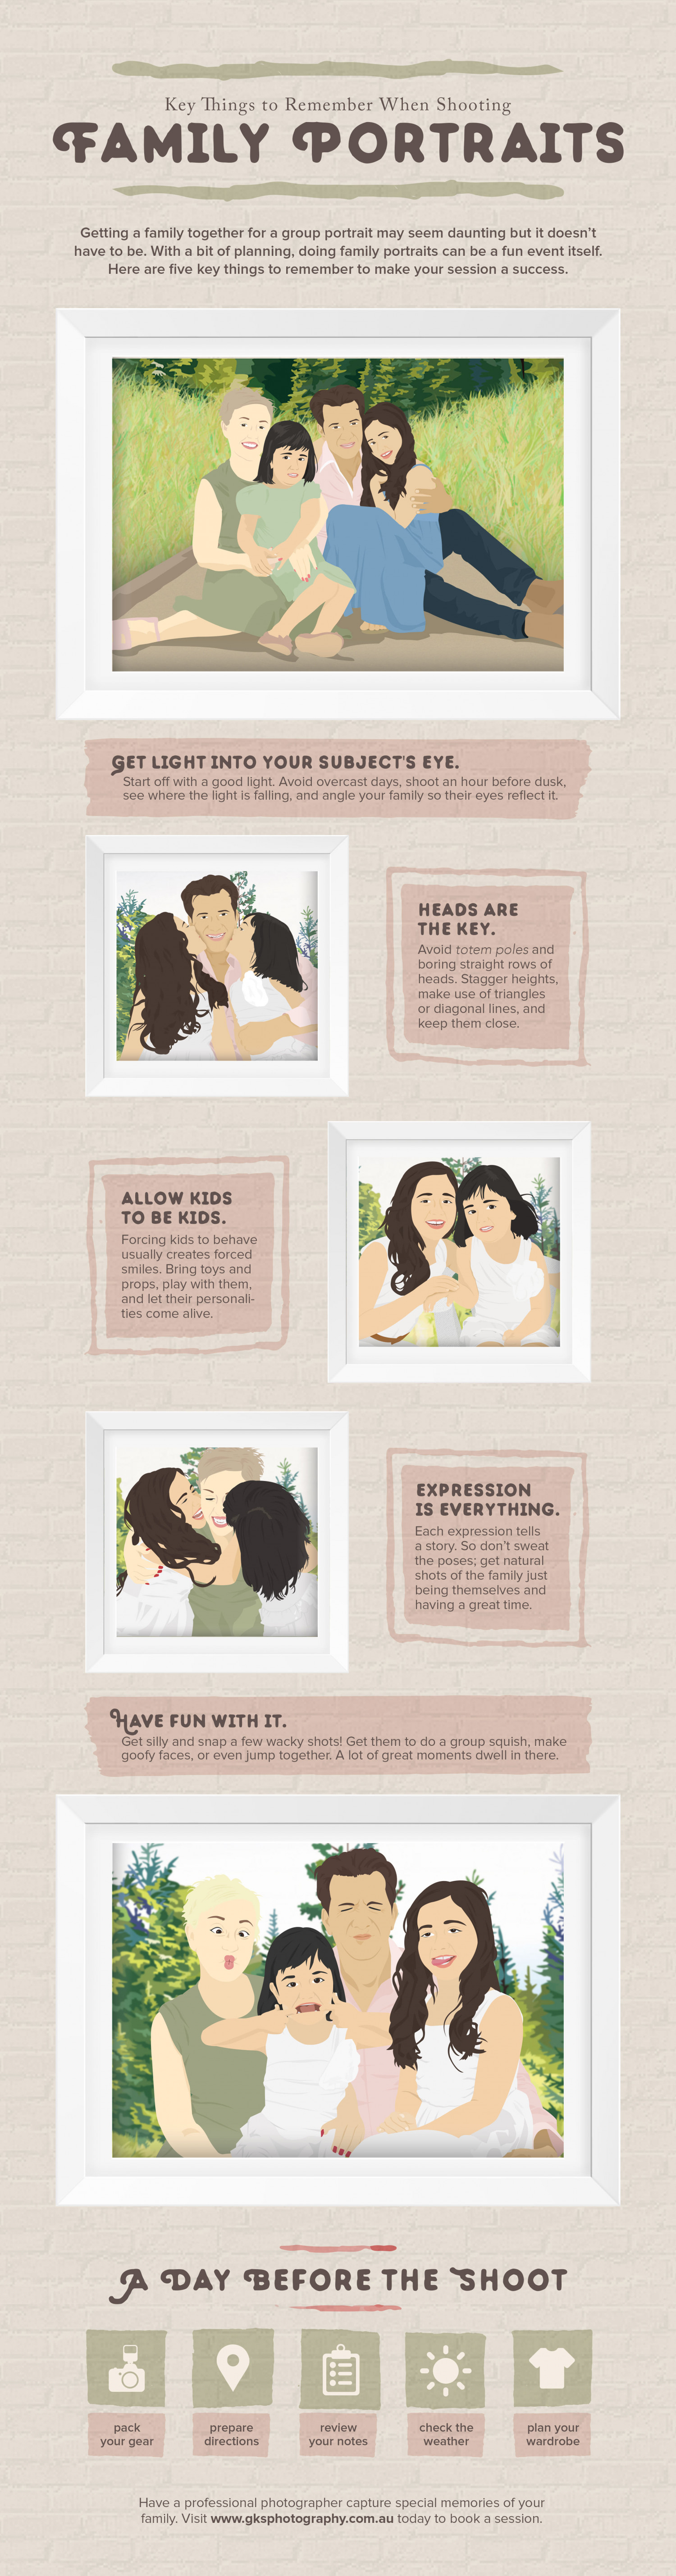 Key Things to Remember When Shooting Family Portraits Infographic